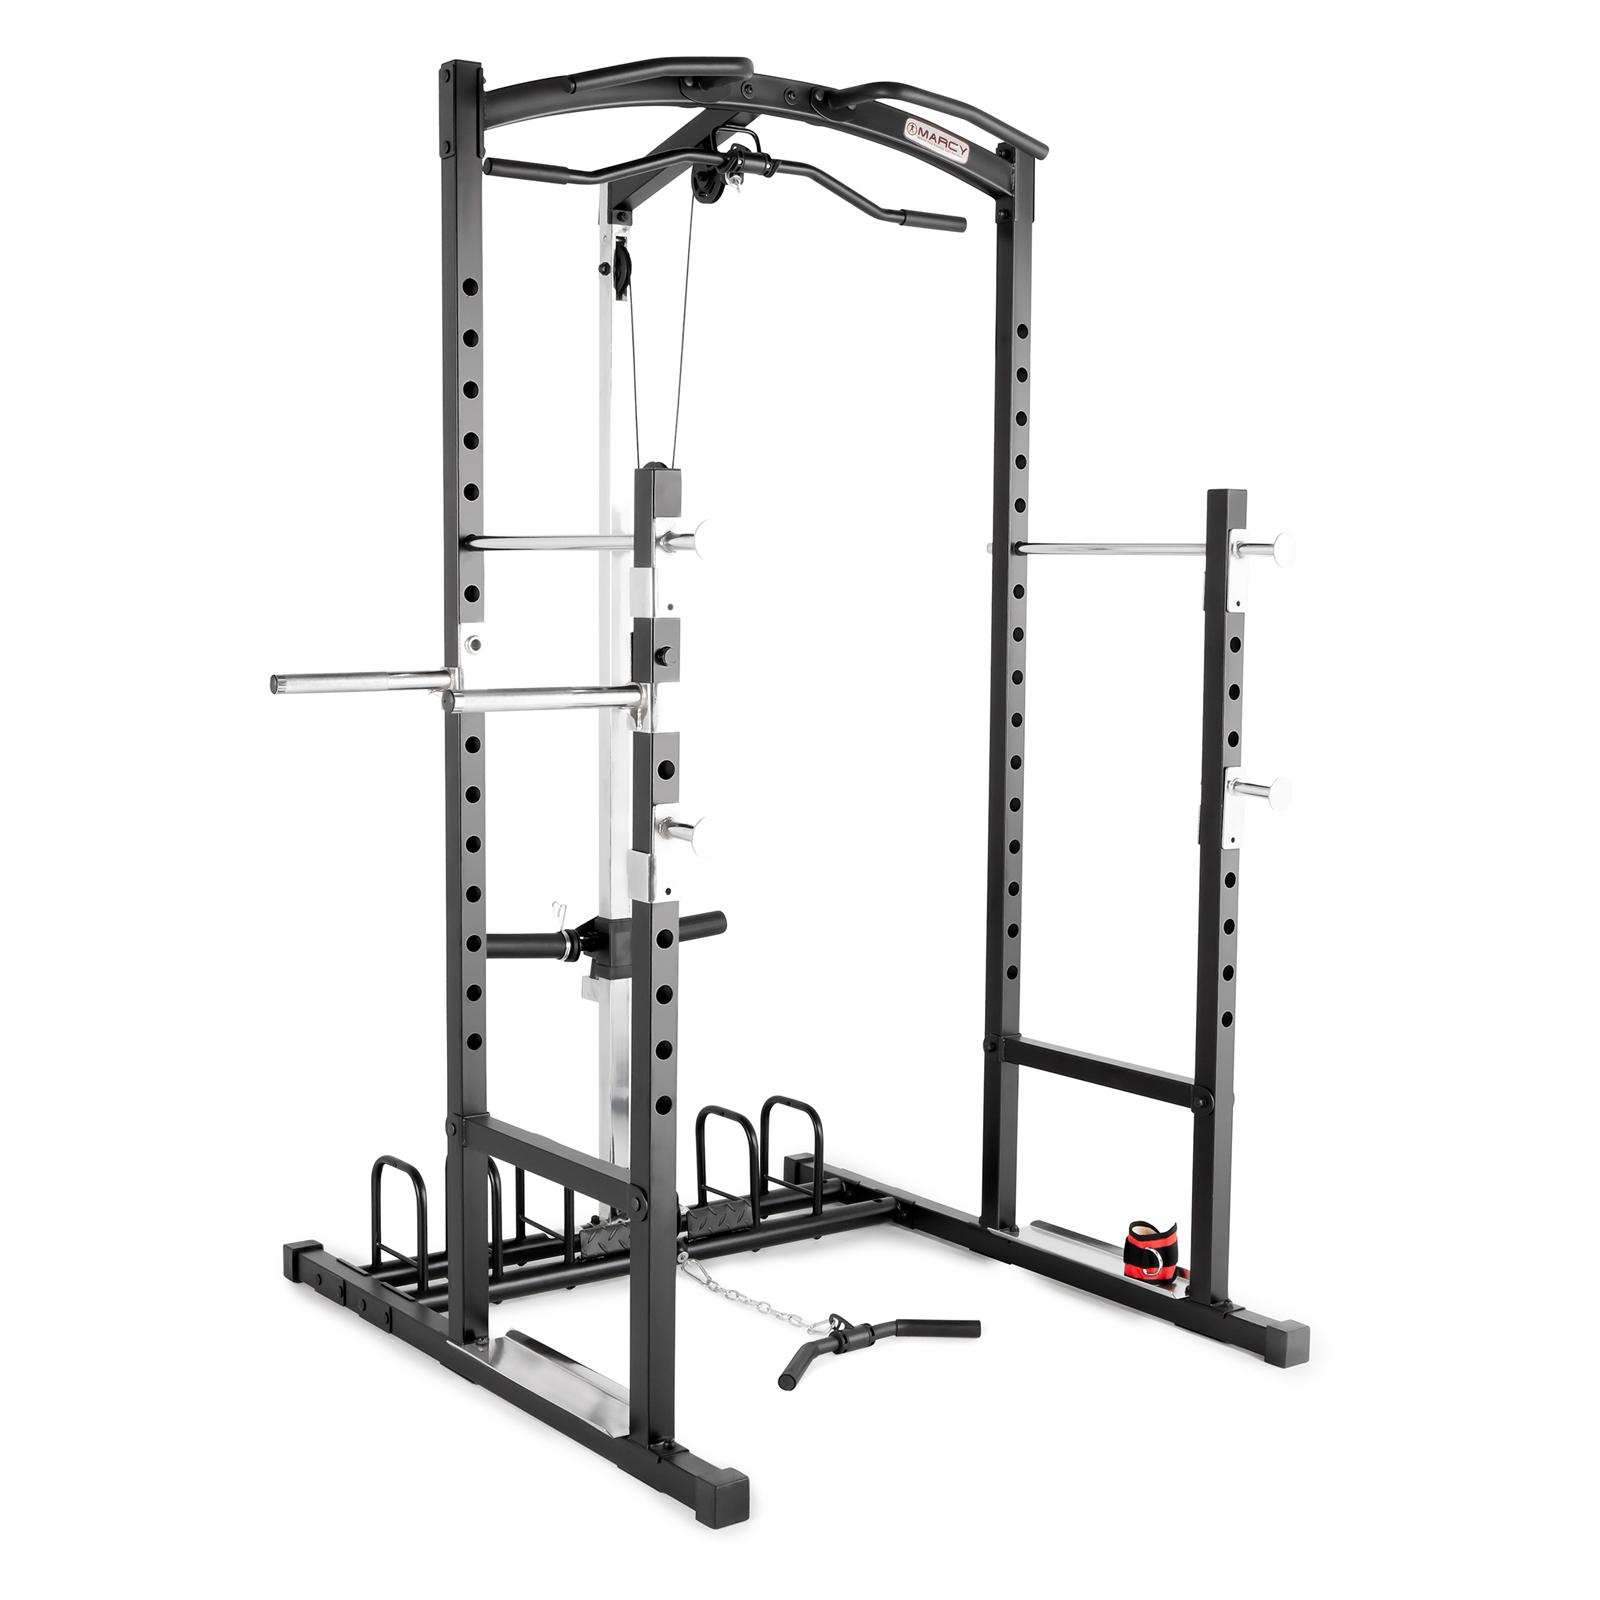 Outdoor gym equipments | Compare Prices at Nextag